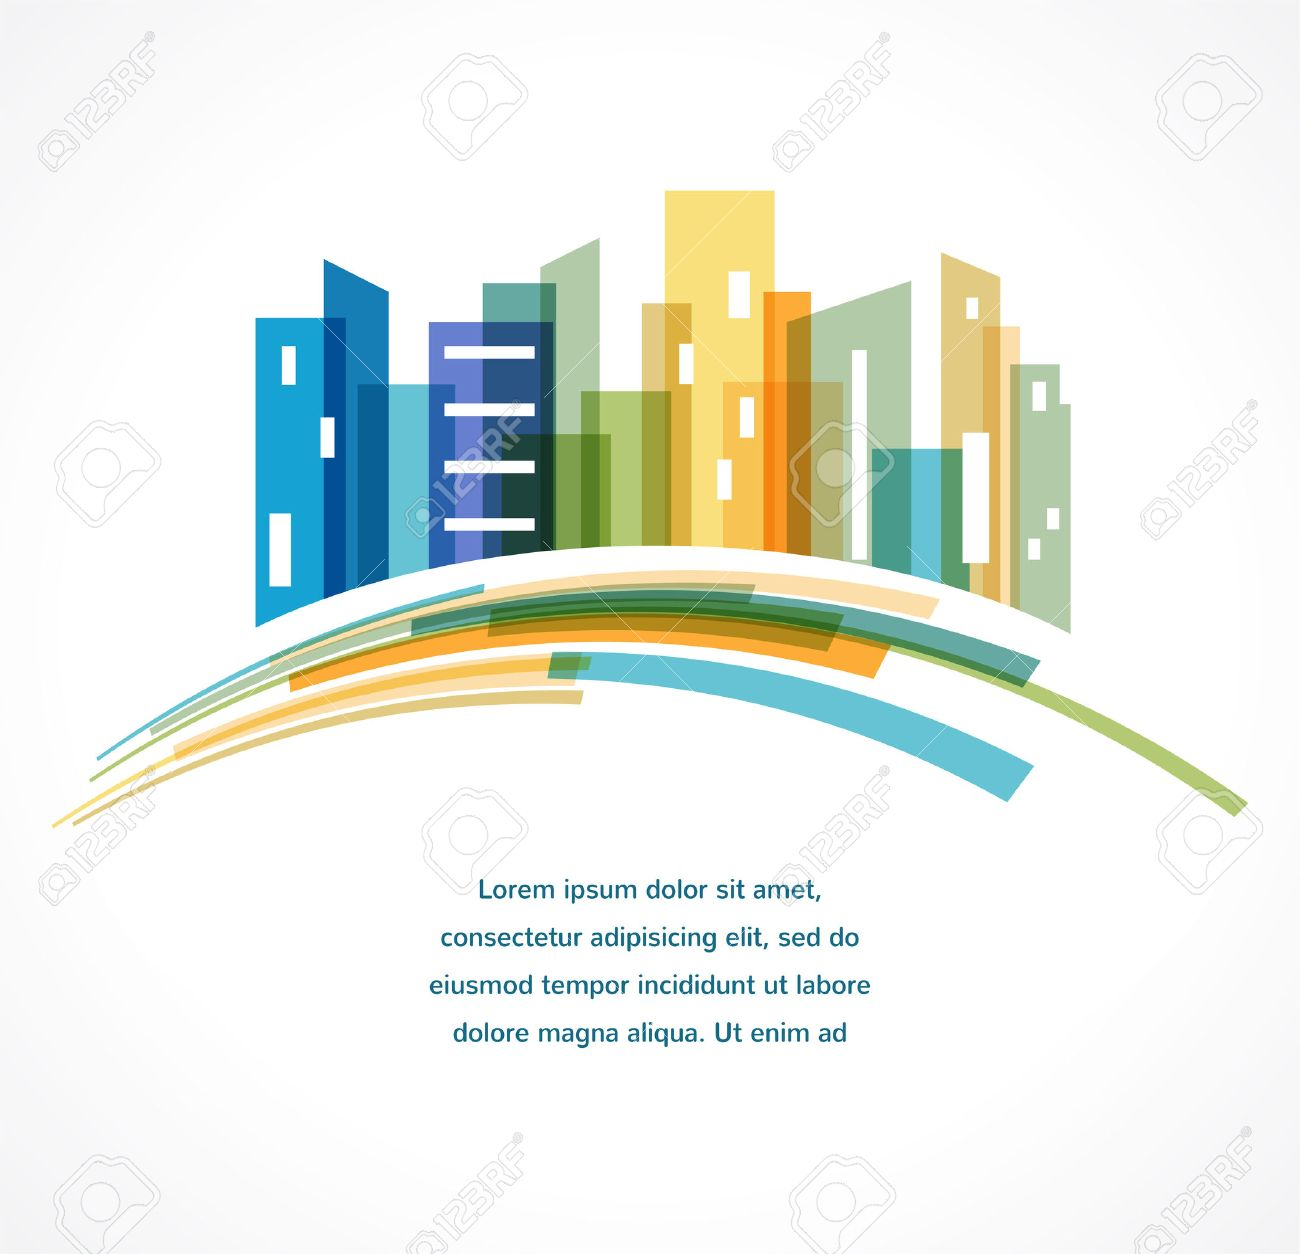 Colorful city, real estate and skyline background - 41200957